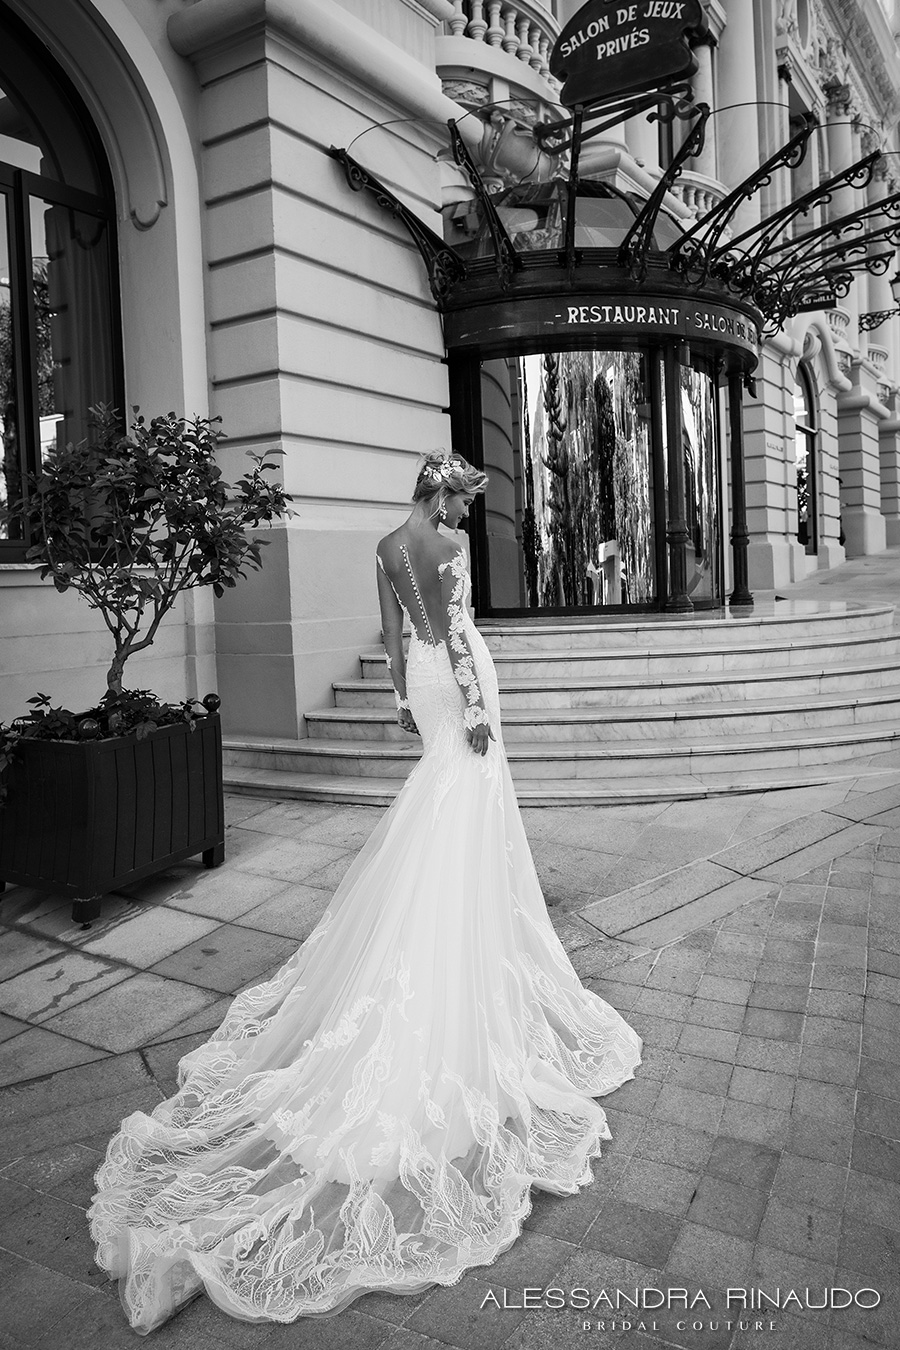 alessandra rinaudo 2017 bridal lace long sleeves illusion boat sweetheart neckline elegant fit and flare wedding dress illusion low back long train (bergenia) mv bv